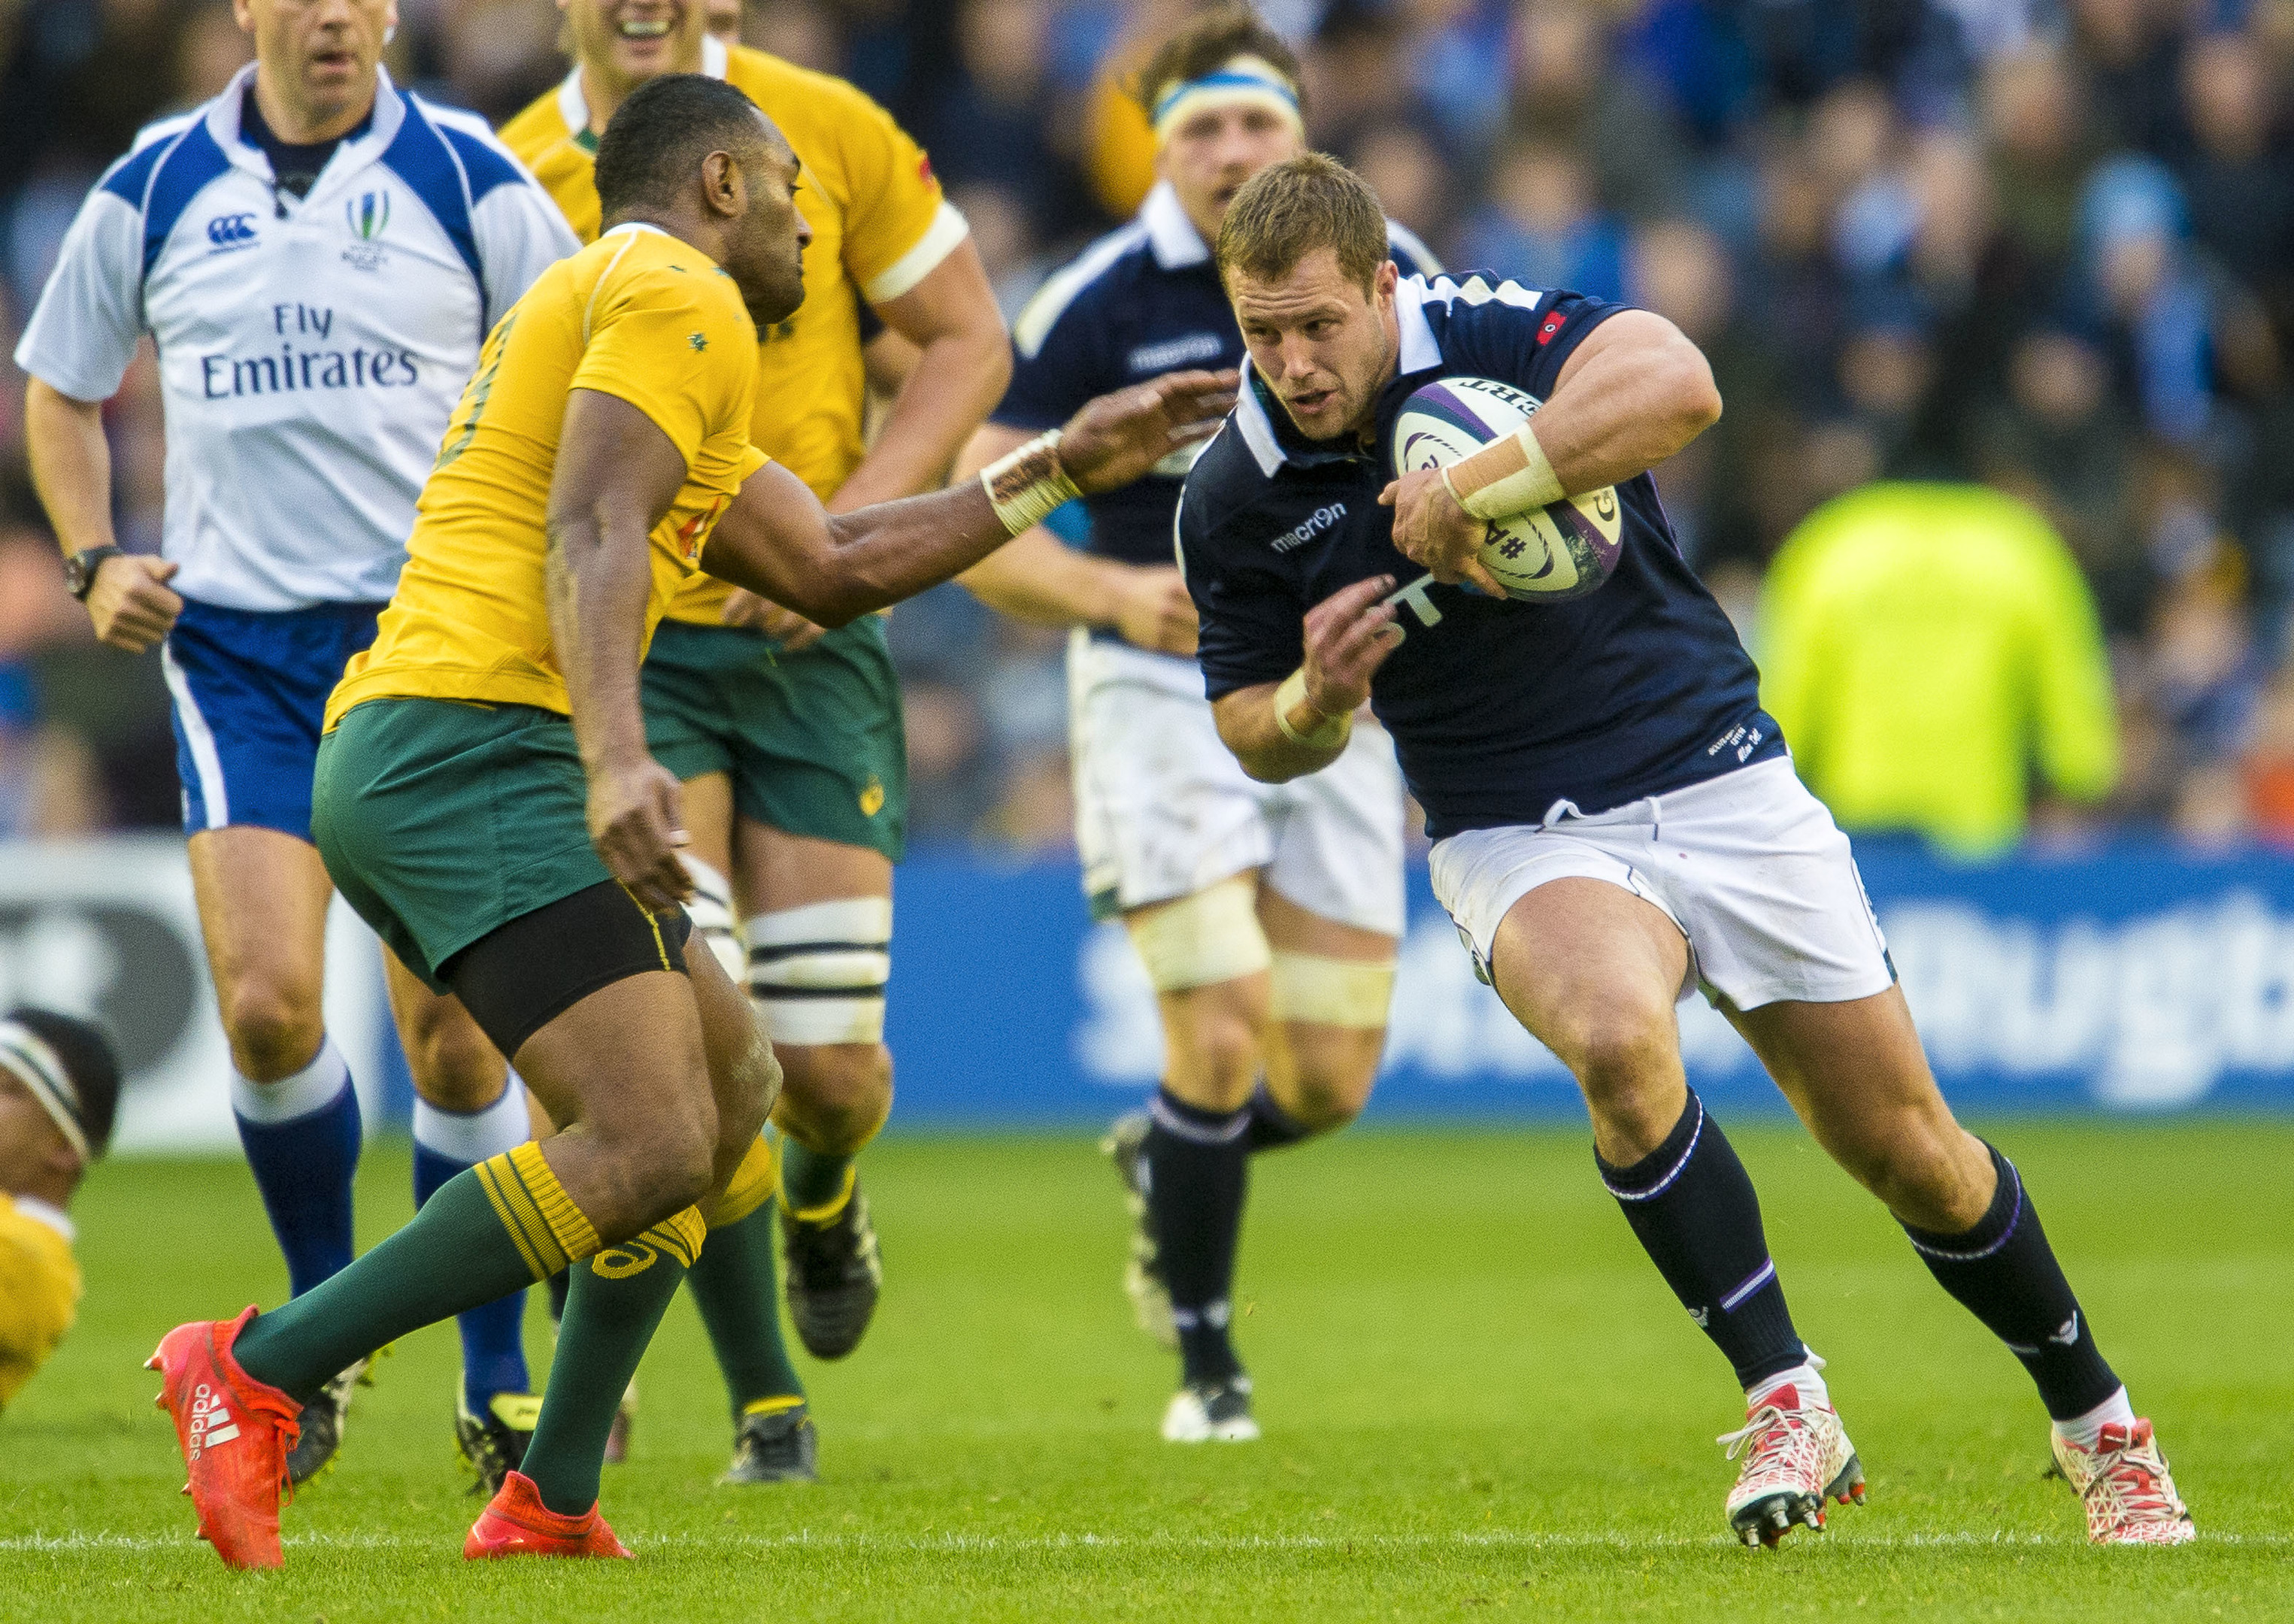 Scotland prop Allan Dell will start for Edinburgh for the first time this season at London Irish.